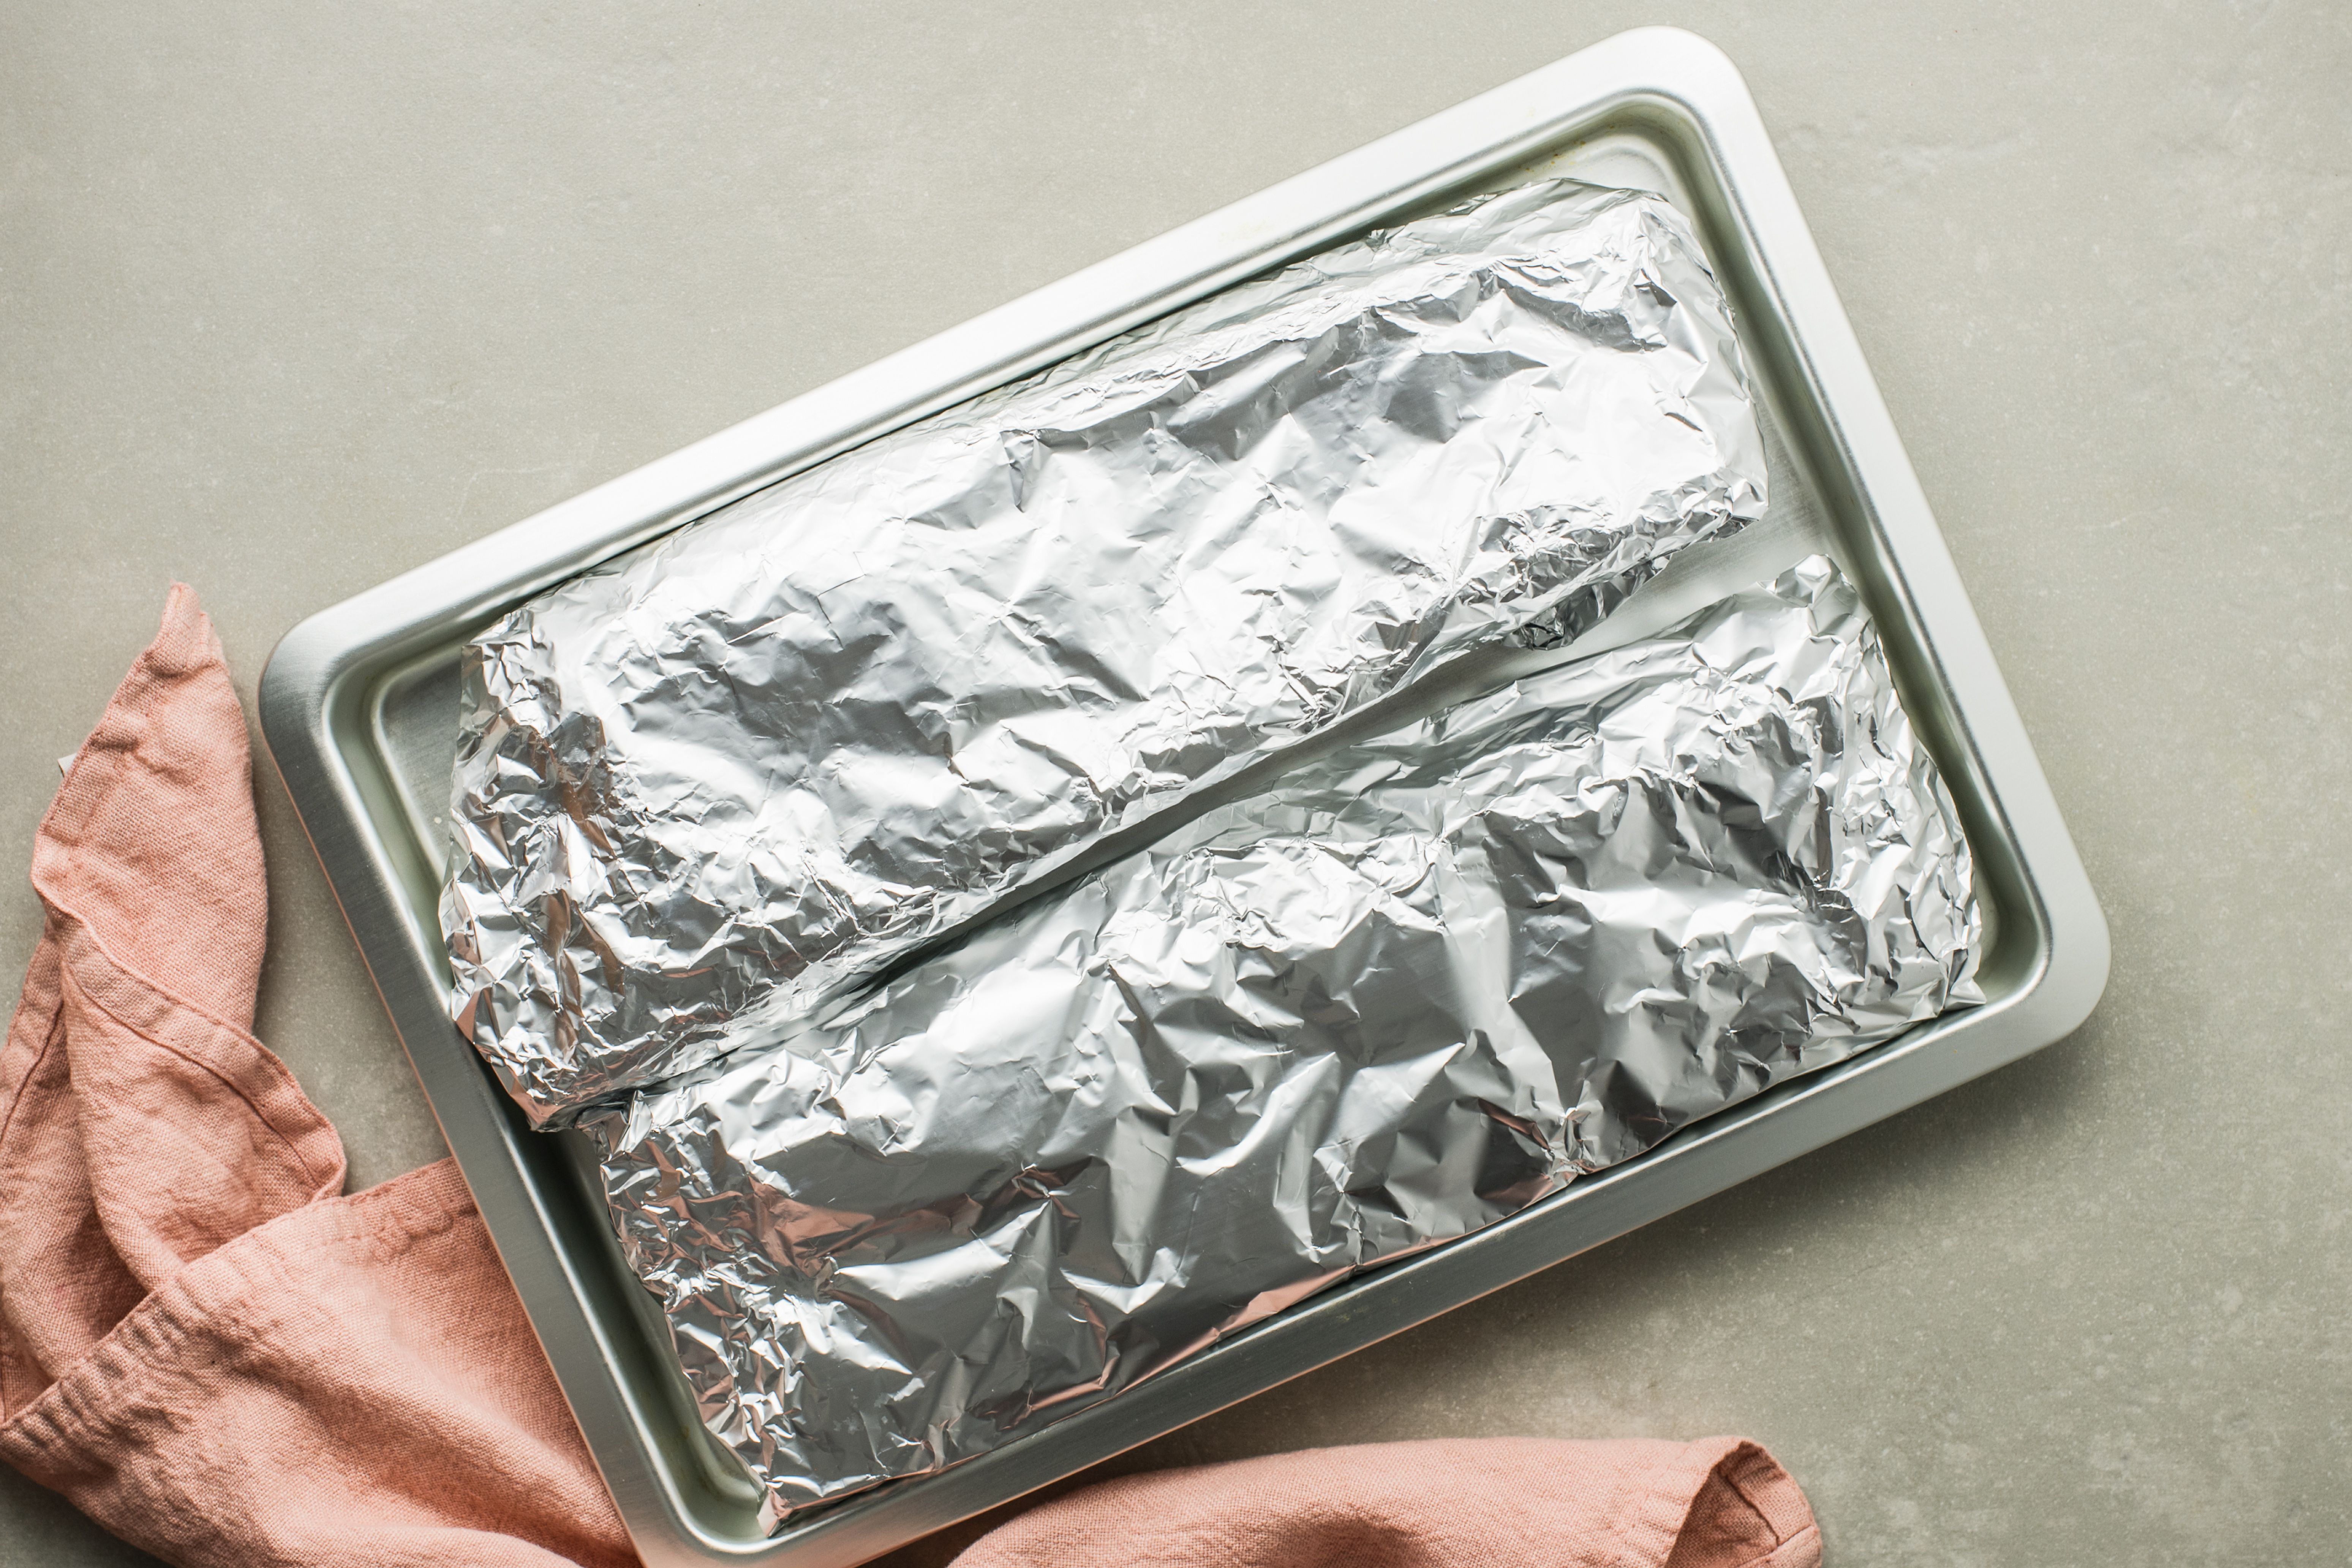 Ribs wrapped in foil on a baking sheet